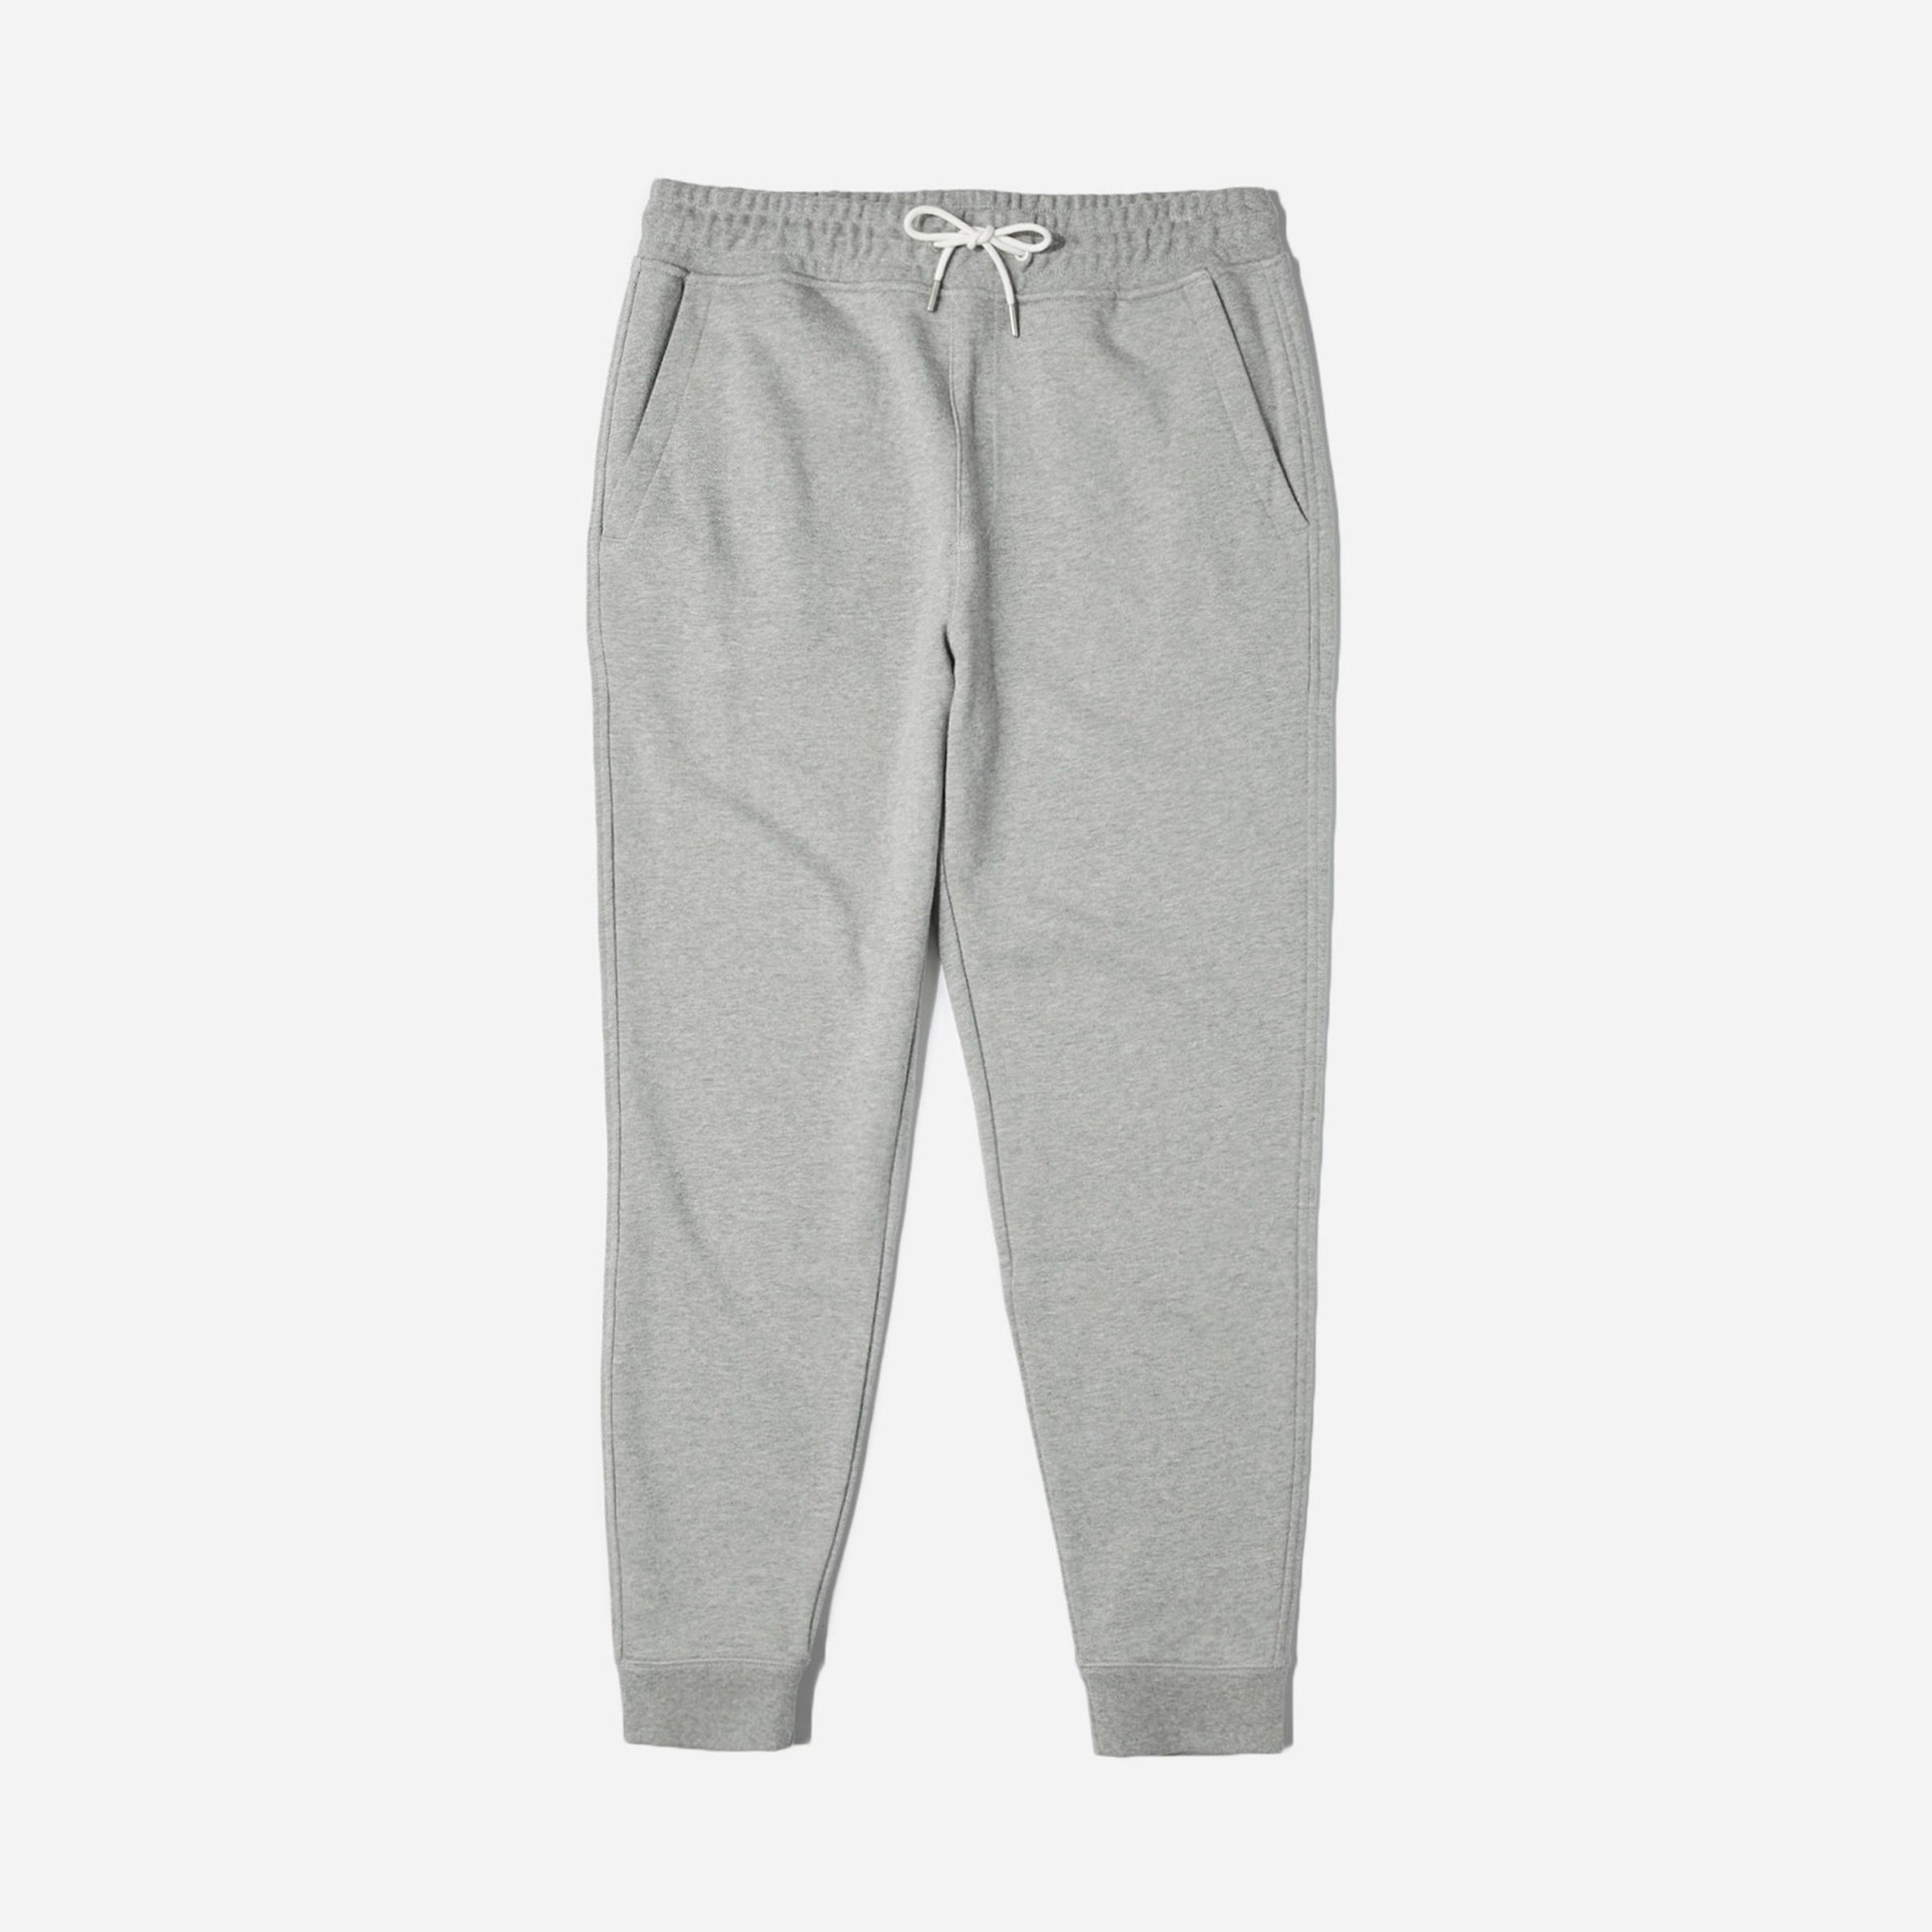 The Classic French Terry Sweatpant Everlane everlane.com $55.00 SHOP NOW The paint splatter-stained, faded ones he keeps wearing outside of the house have GOT. TO.